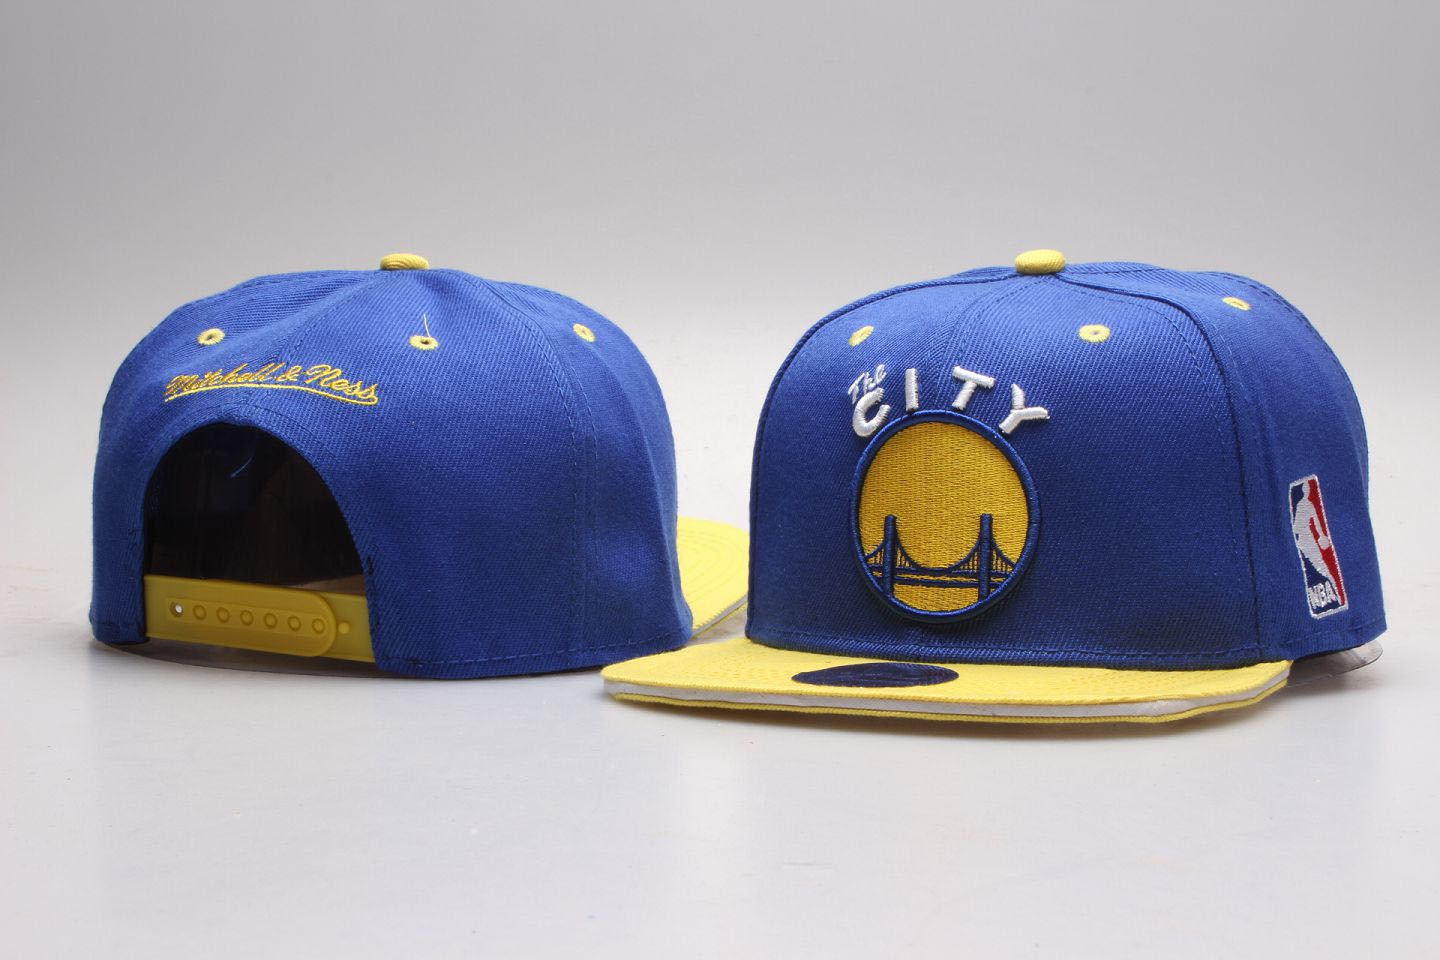 NBA Golden State Warriors Snapback hat 20181125